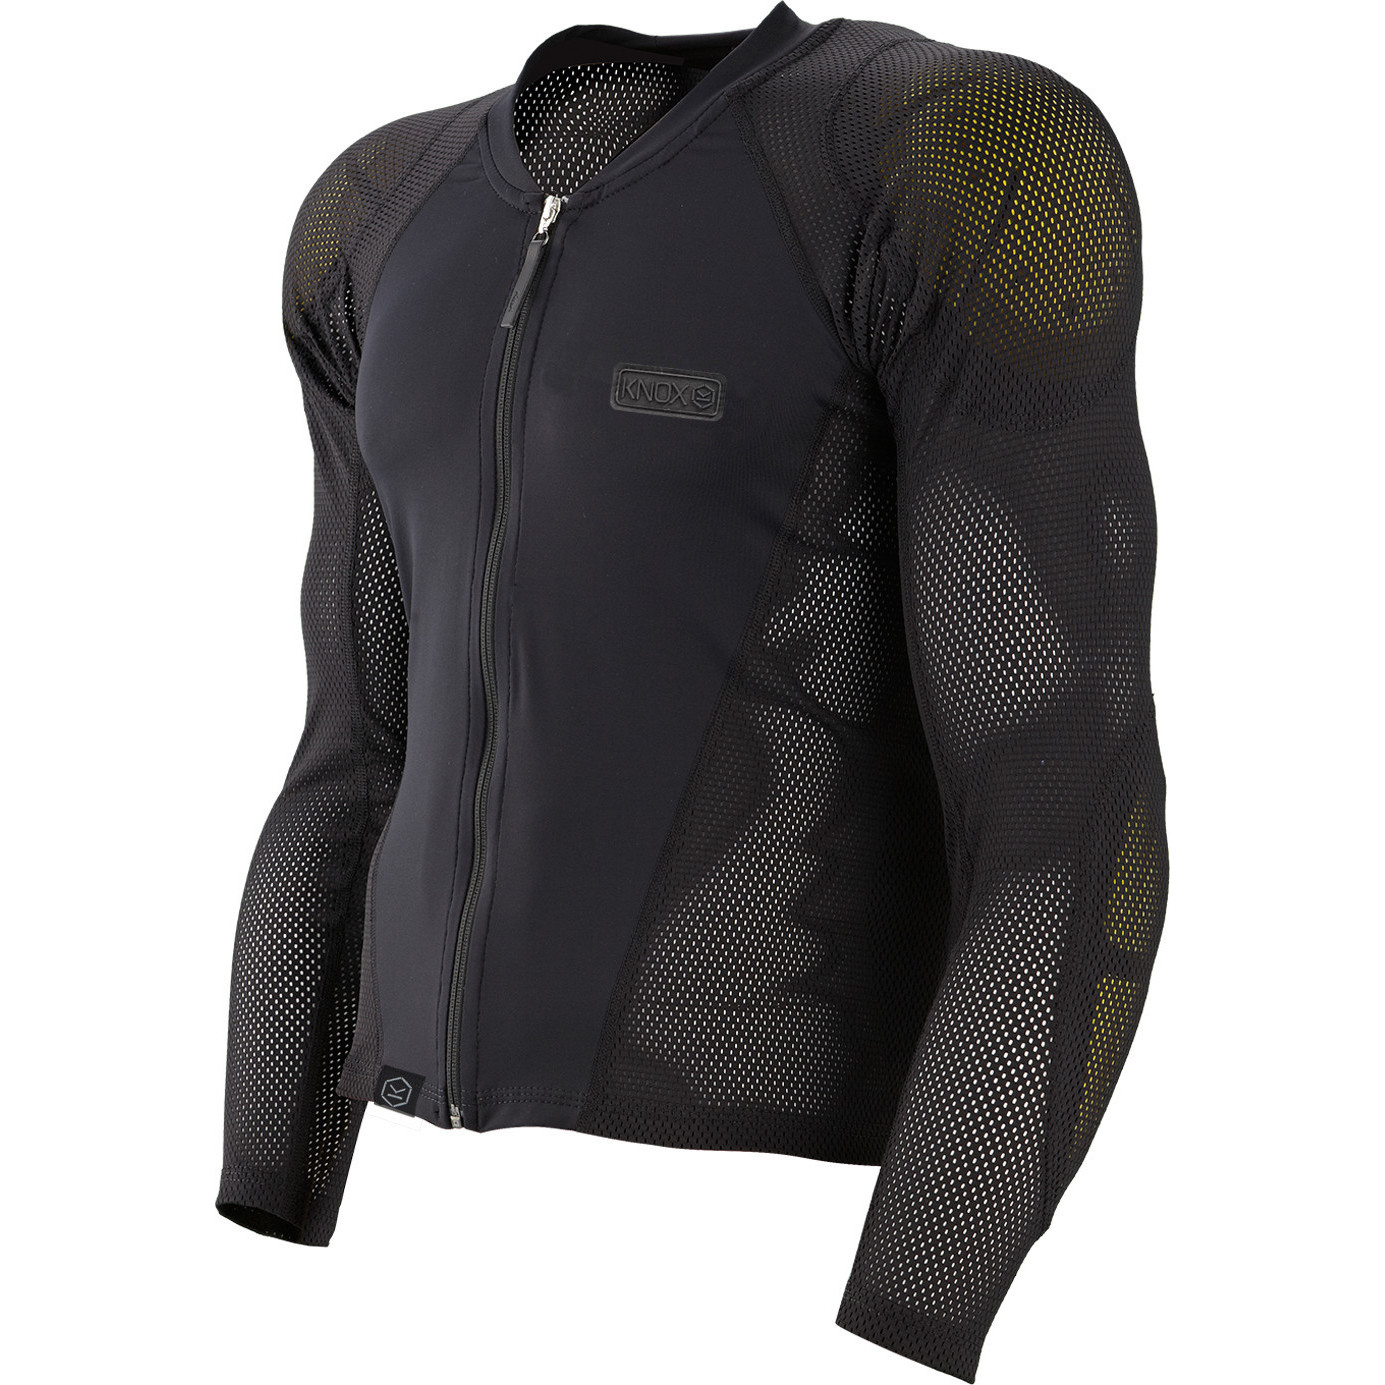 Knox-Venture-Shirt-Protector-Black-Flexible-Lightweight-Body-Armour-CE-Approved